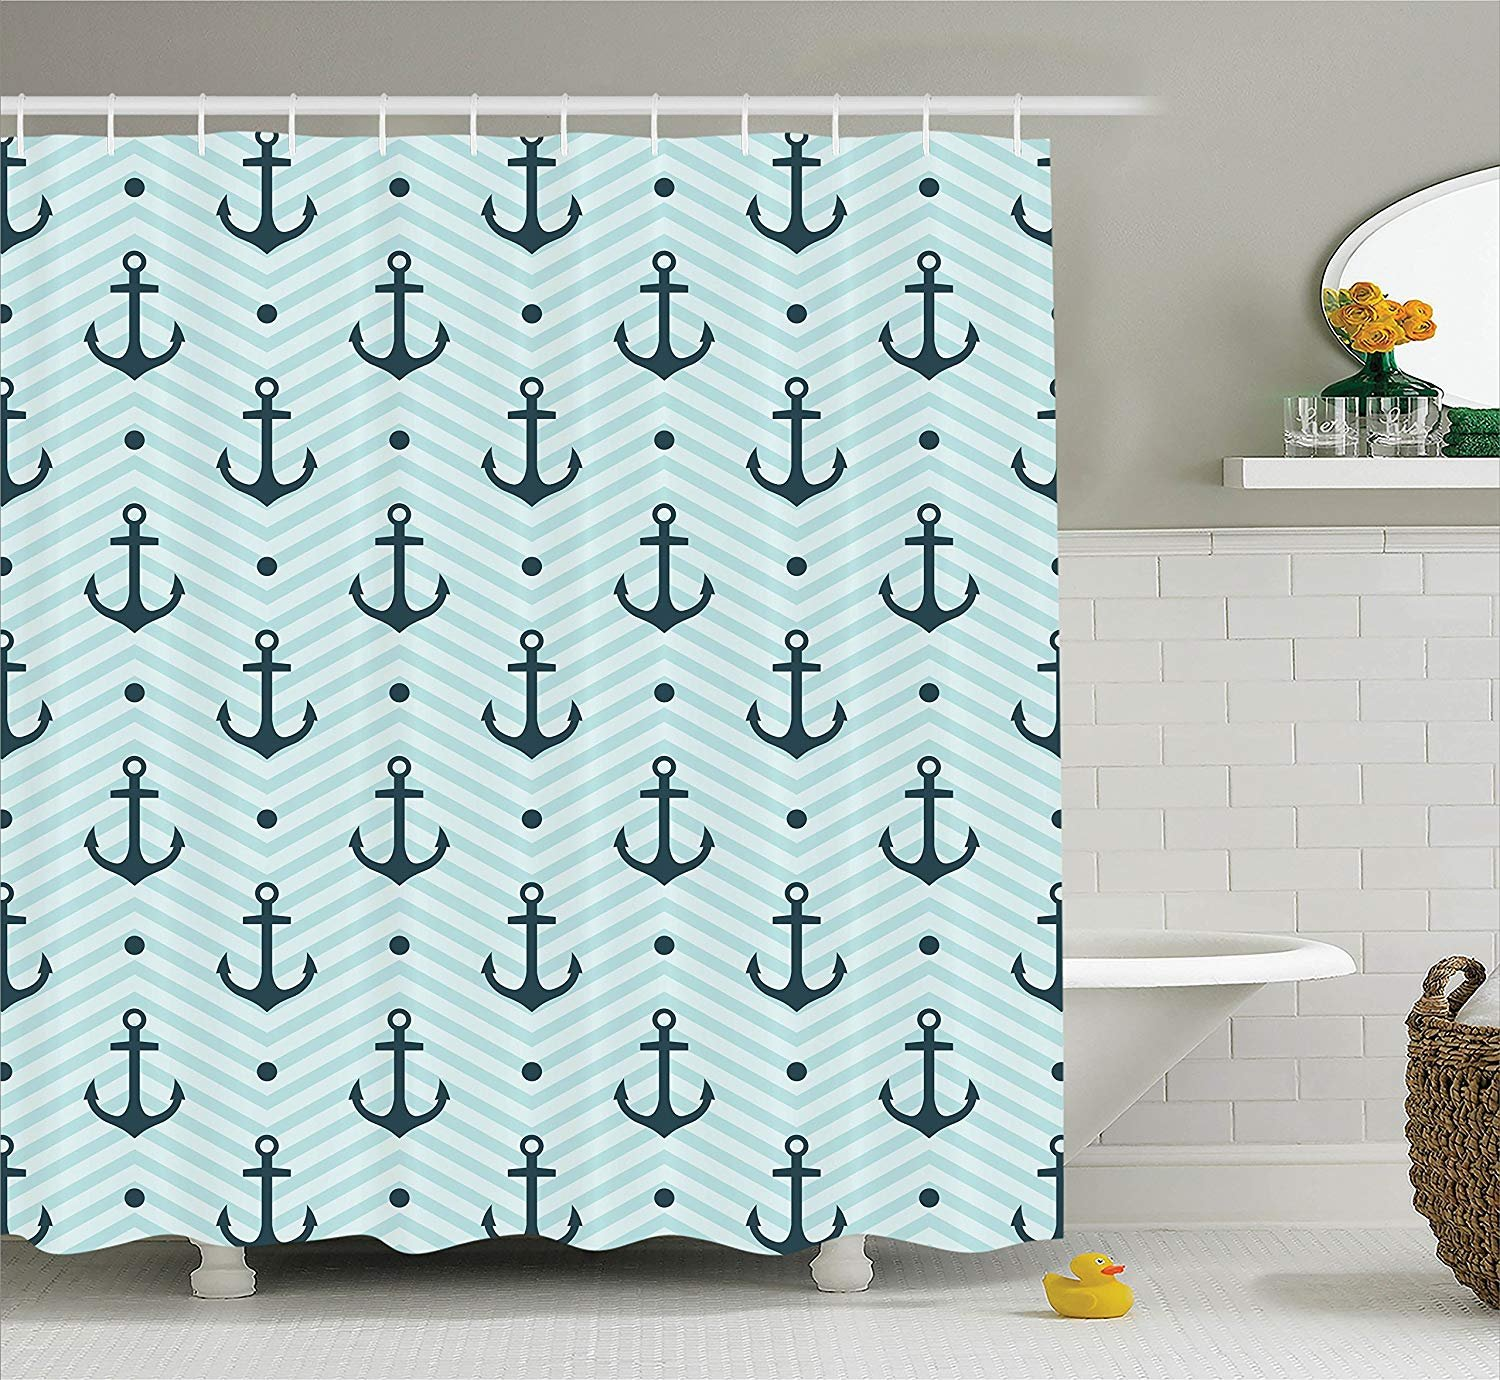 Printing Anchor Shower Curtain Set Home Decor, Anchors Zigzag Chevron Background Abstract Waves Monochromic Artwork, Bathroom Curtain Home Decorations Machine Washable, 72 x 84 Inches Green